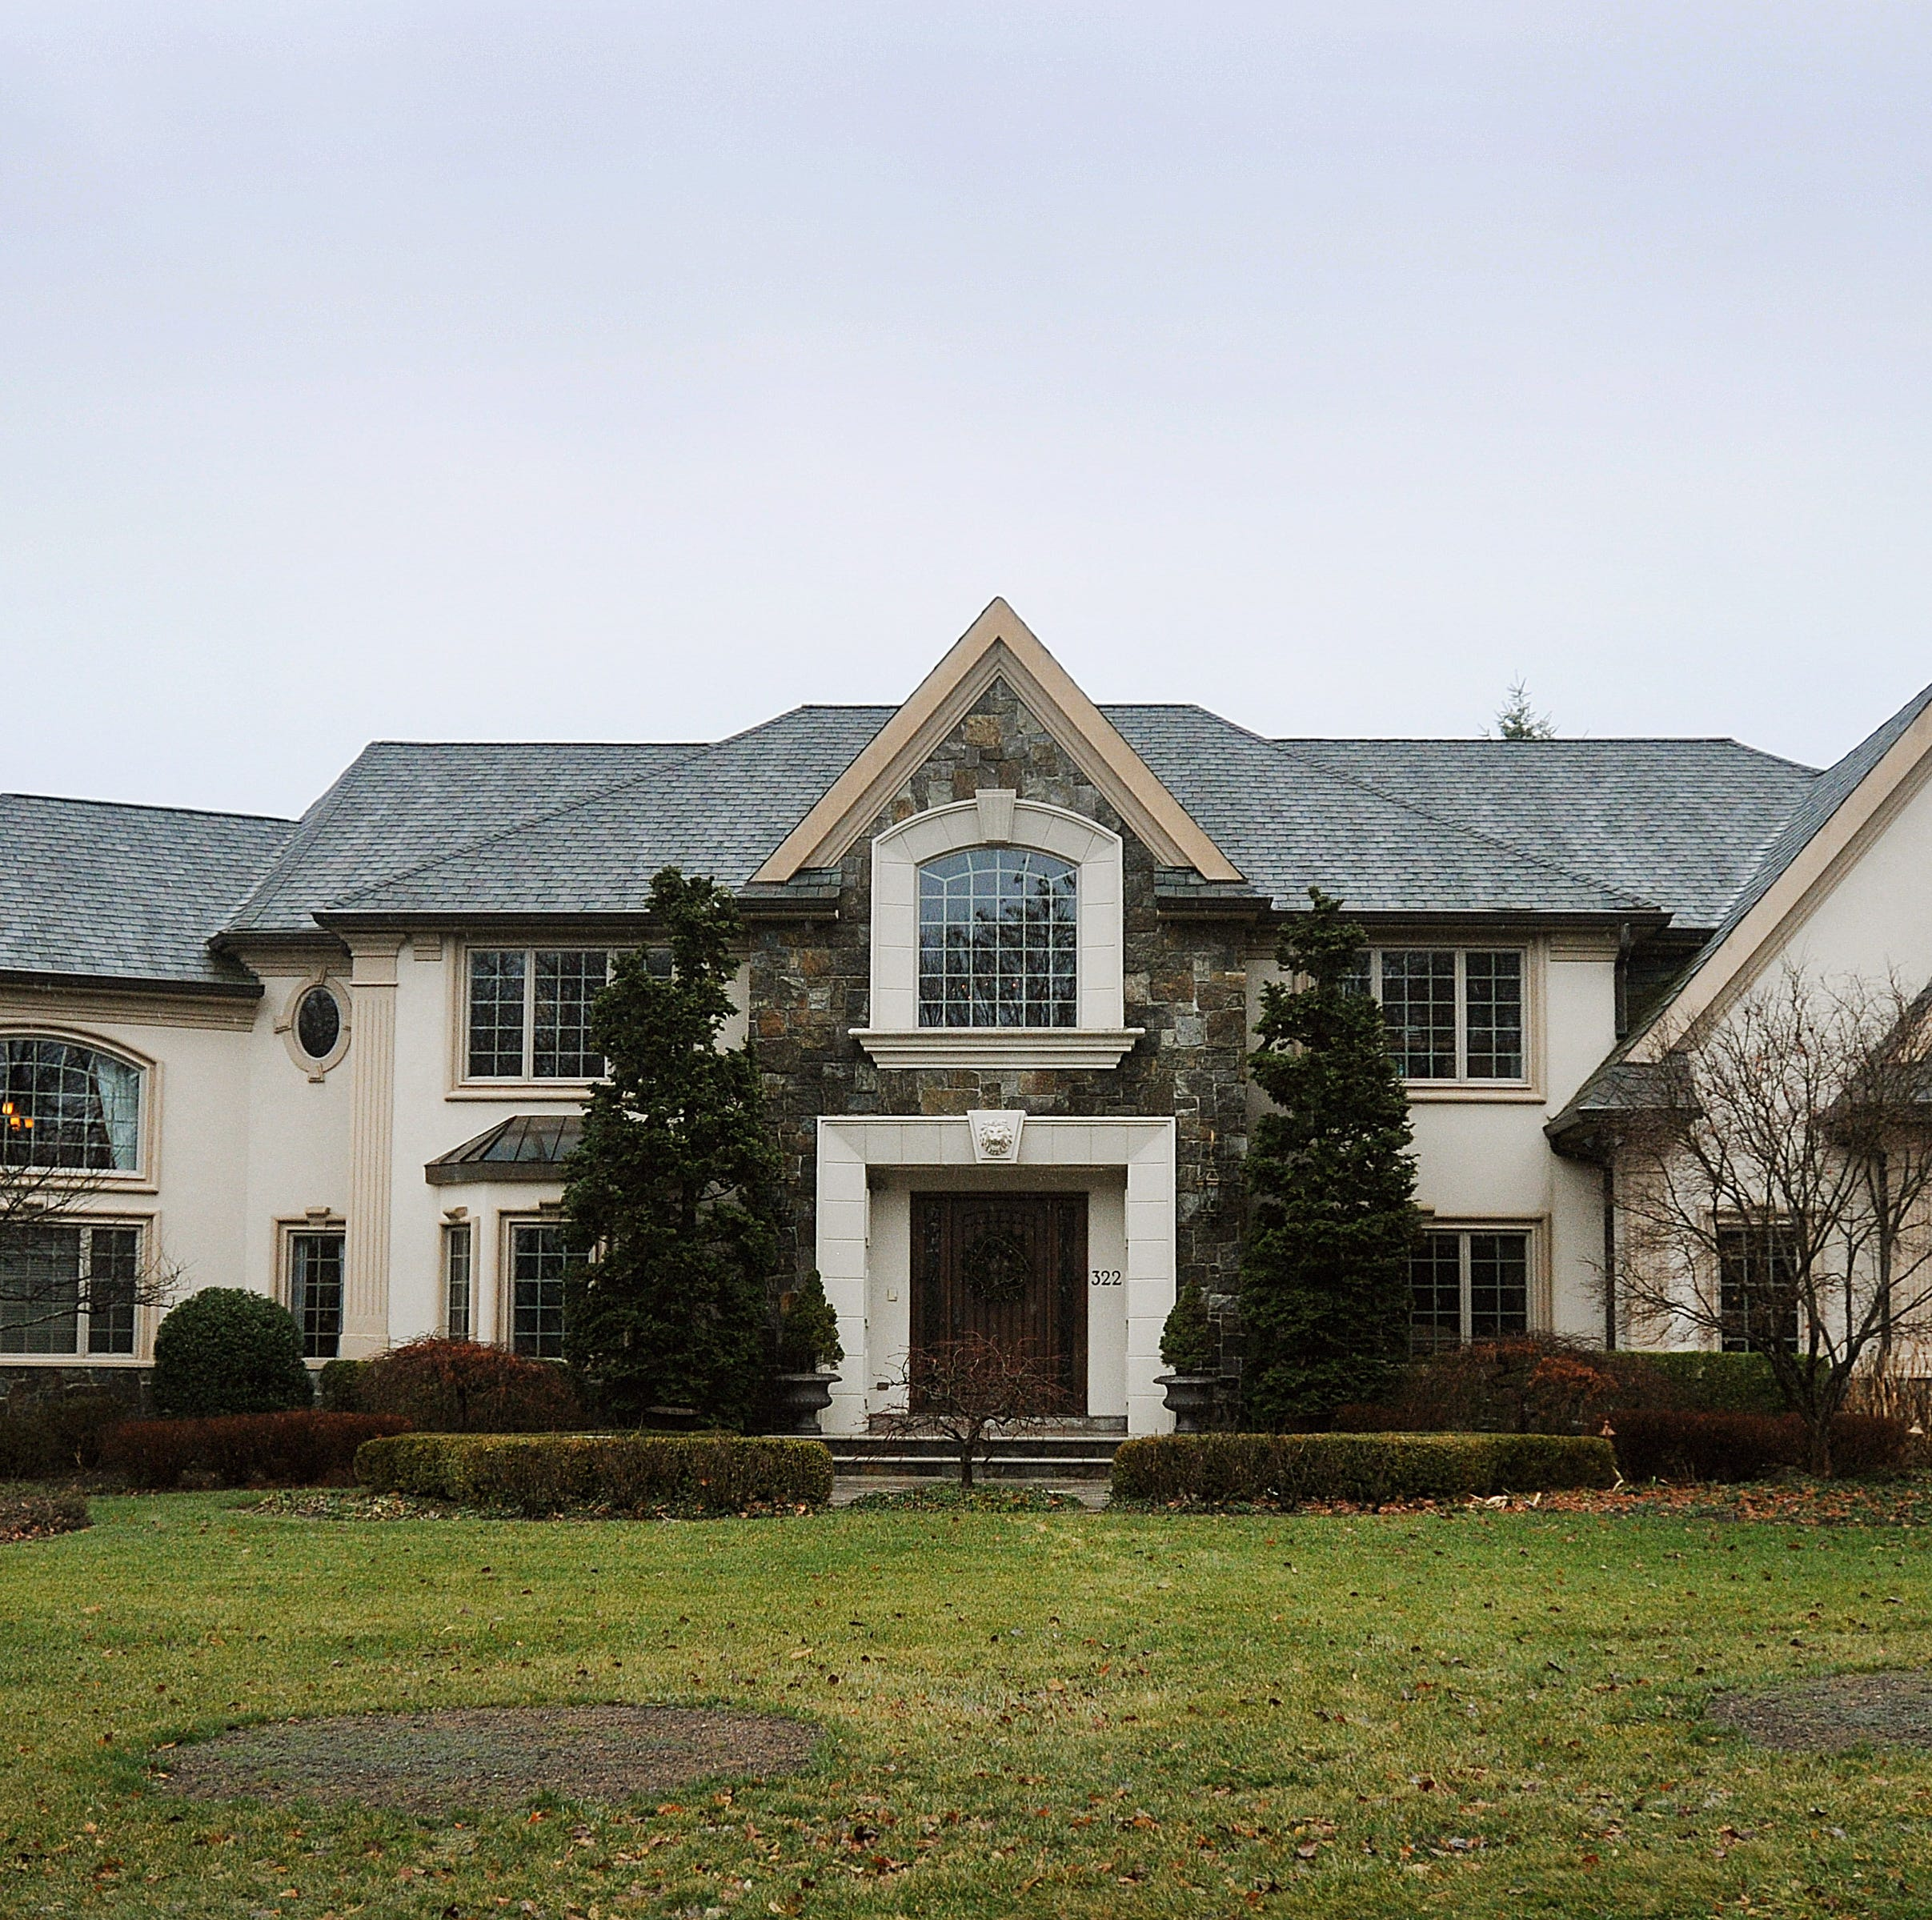 RHONJ's Jacqueline Laurita lists mansion for $1.95 million